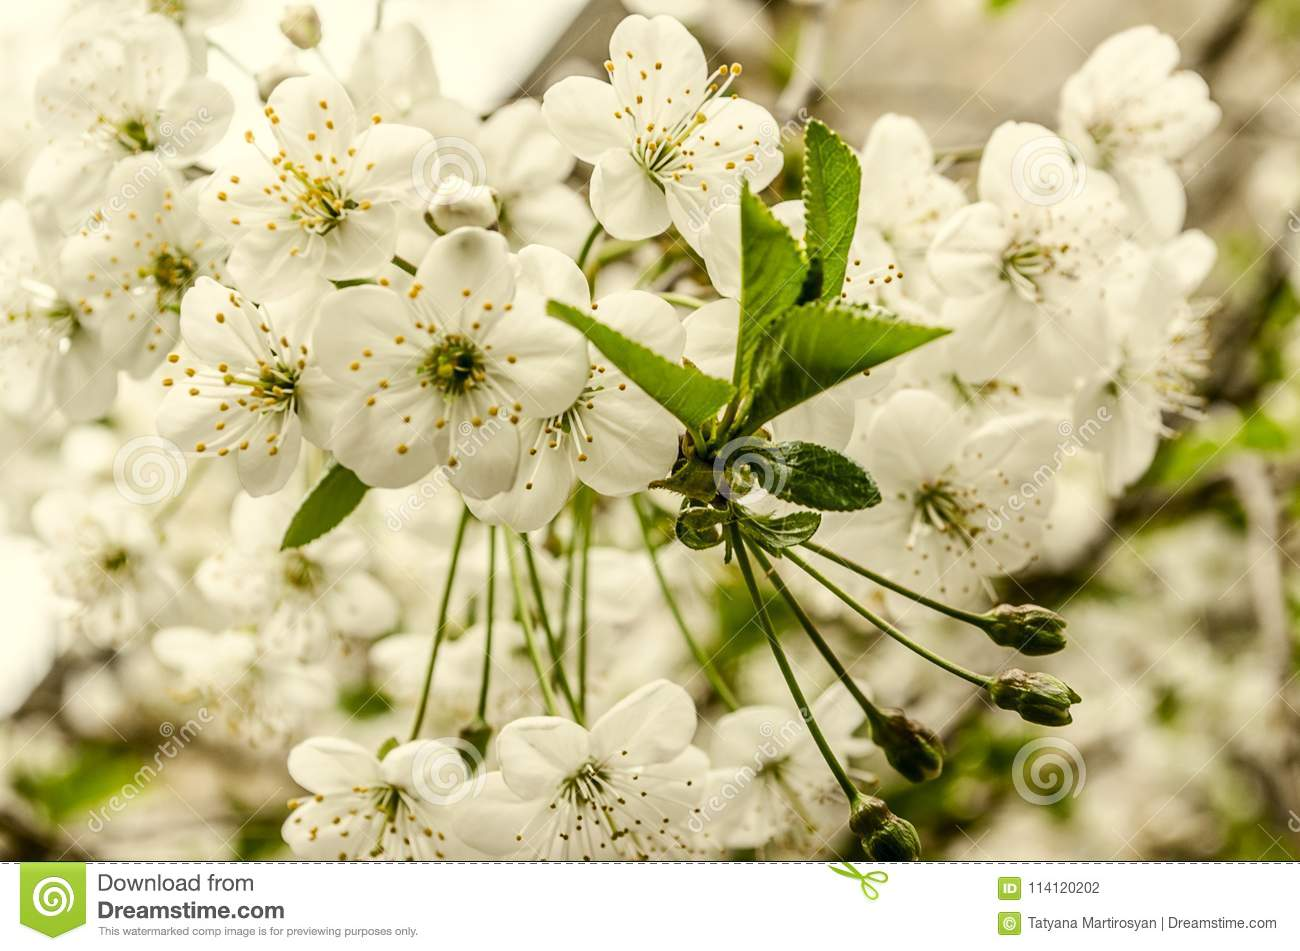 White flowers and unrevealed green leaves the cherry tree